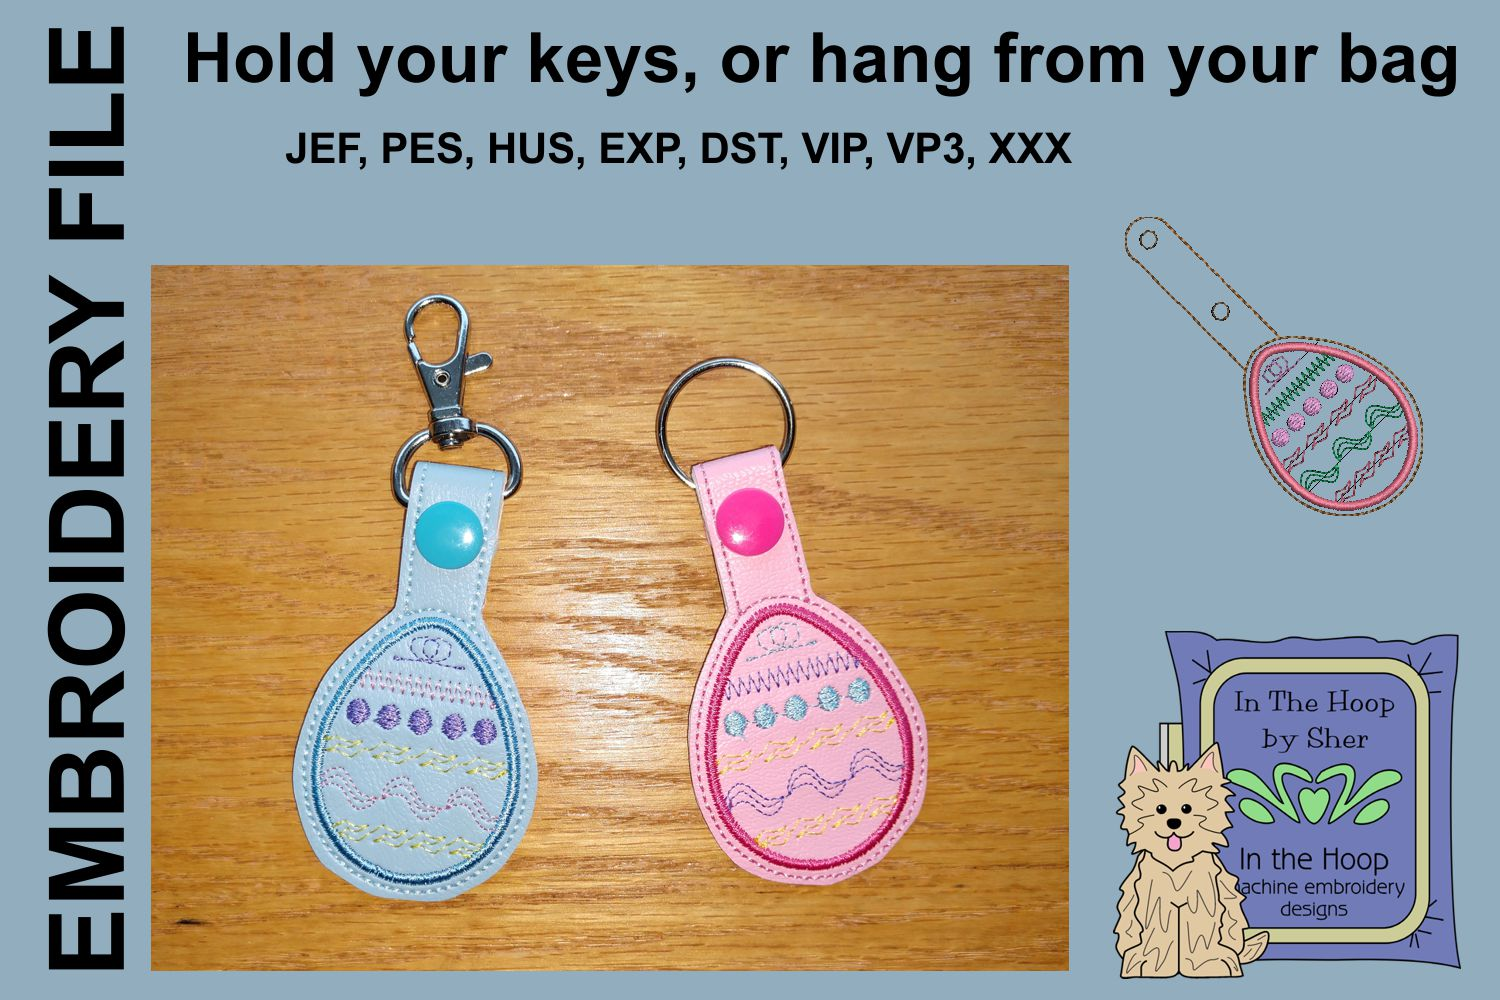 ITH Easter Egg 1 Key Fob - Embroidery Design example image 1